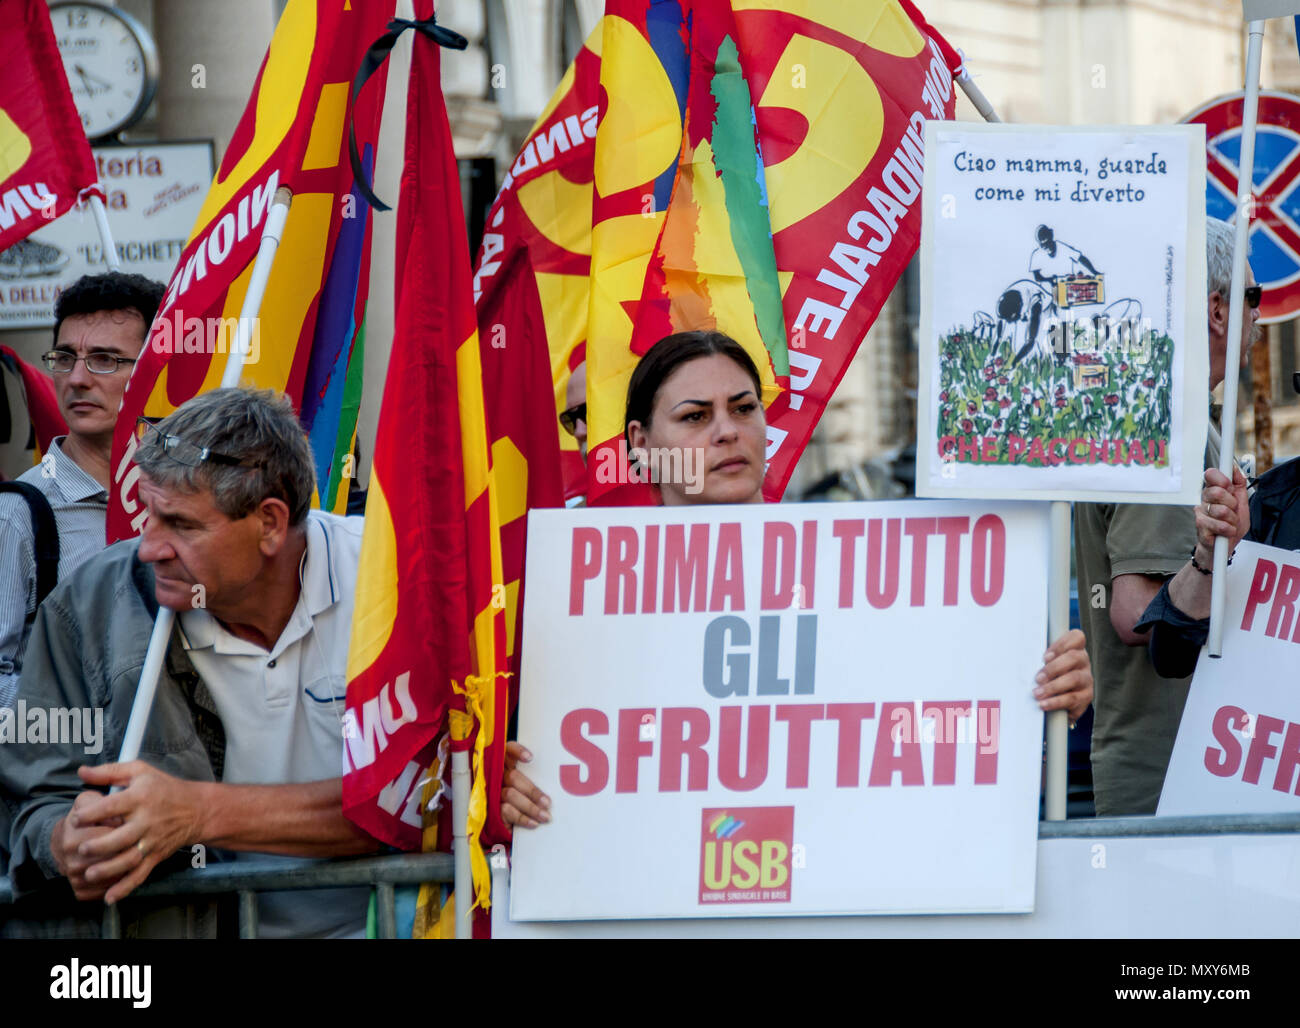 Protest in front of the Prefecture in Rome of the Usb union, the same union that was registered Soumayla Sacko, the 29-year-old Malian laborer killed in the countryside of Vibo Valentia, in Calabria while helping fellow countrymen to recover sheet metal pieces or an abandoned factory to raise shacks where to rest after 12 hours of work in the fields. The union denounces the climate of intolerance fed excessively during the election campaign. The first statements by Matteo Salvini, the current Minister of the Interior, towards the migrants were: 'the pacchus is over'. (Photo by Patrizia Cortell - Stock Image